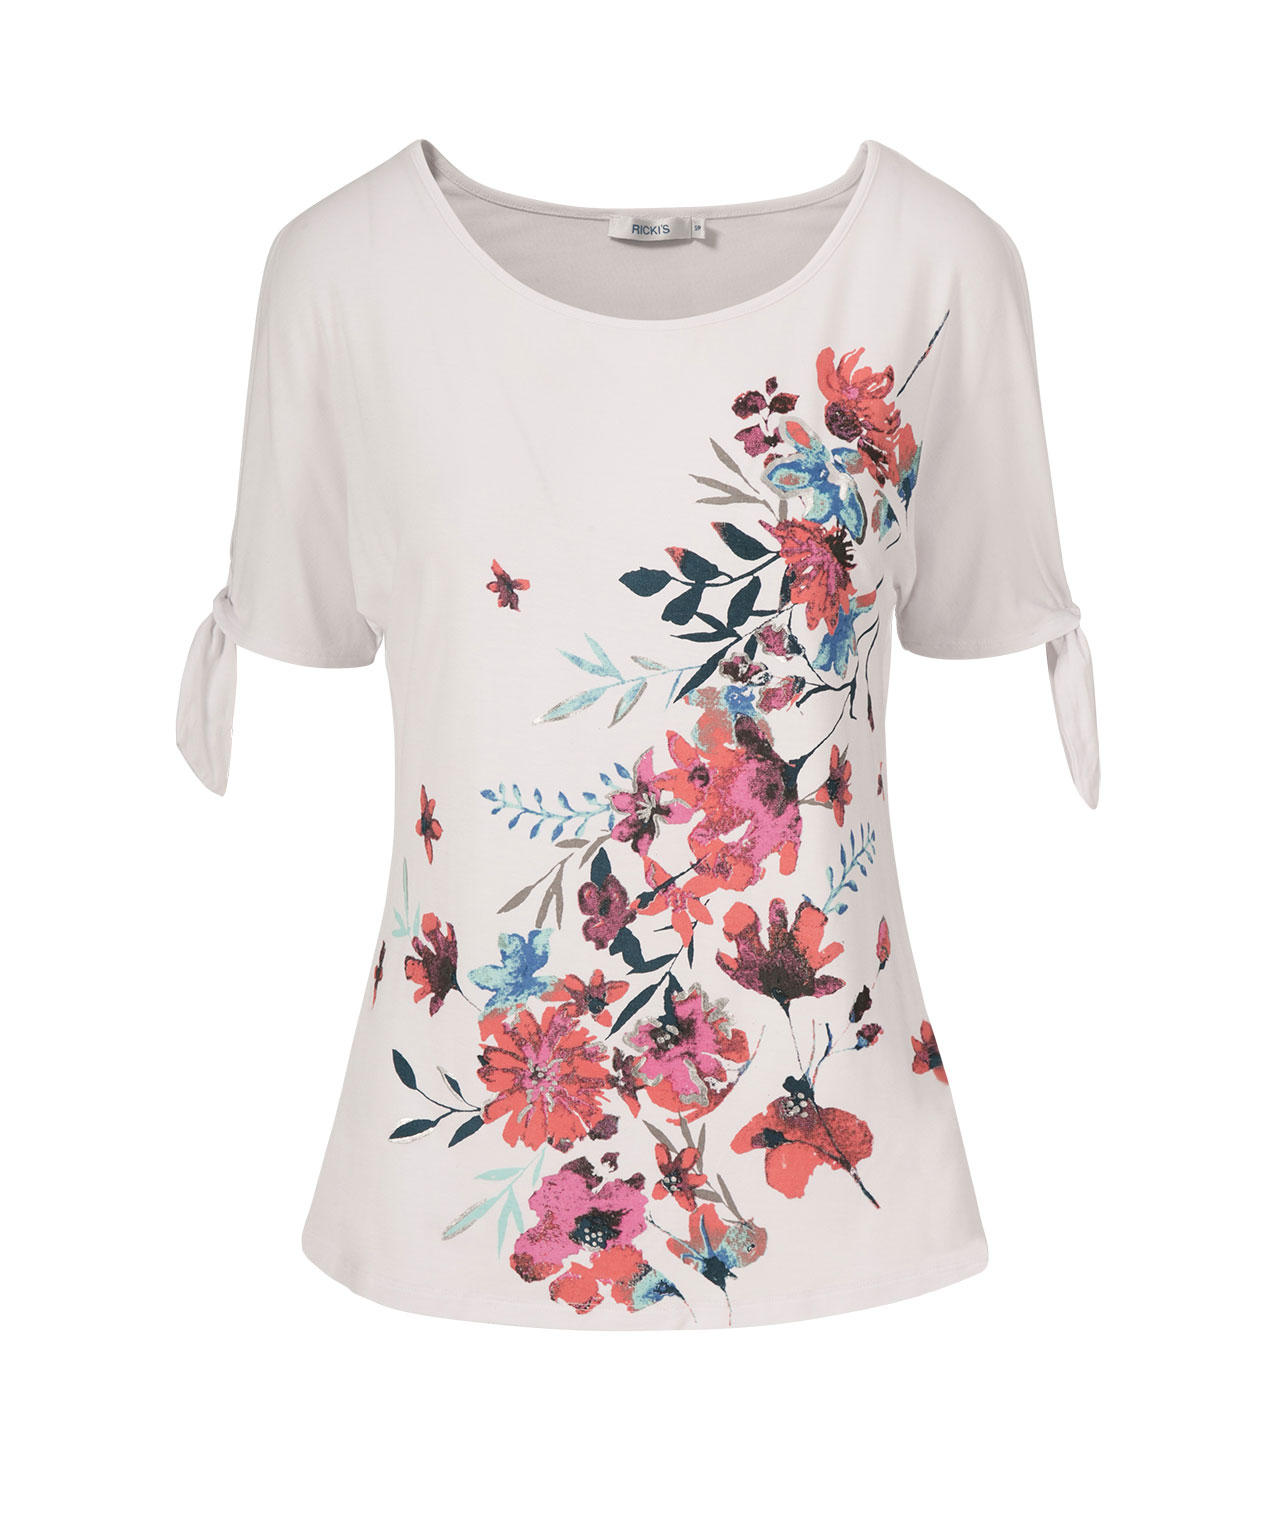 Floral Graphic Cold Shoulder Tee   Rickis